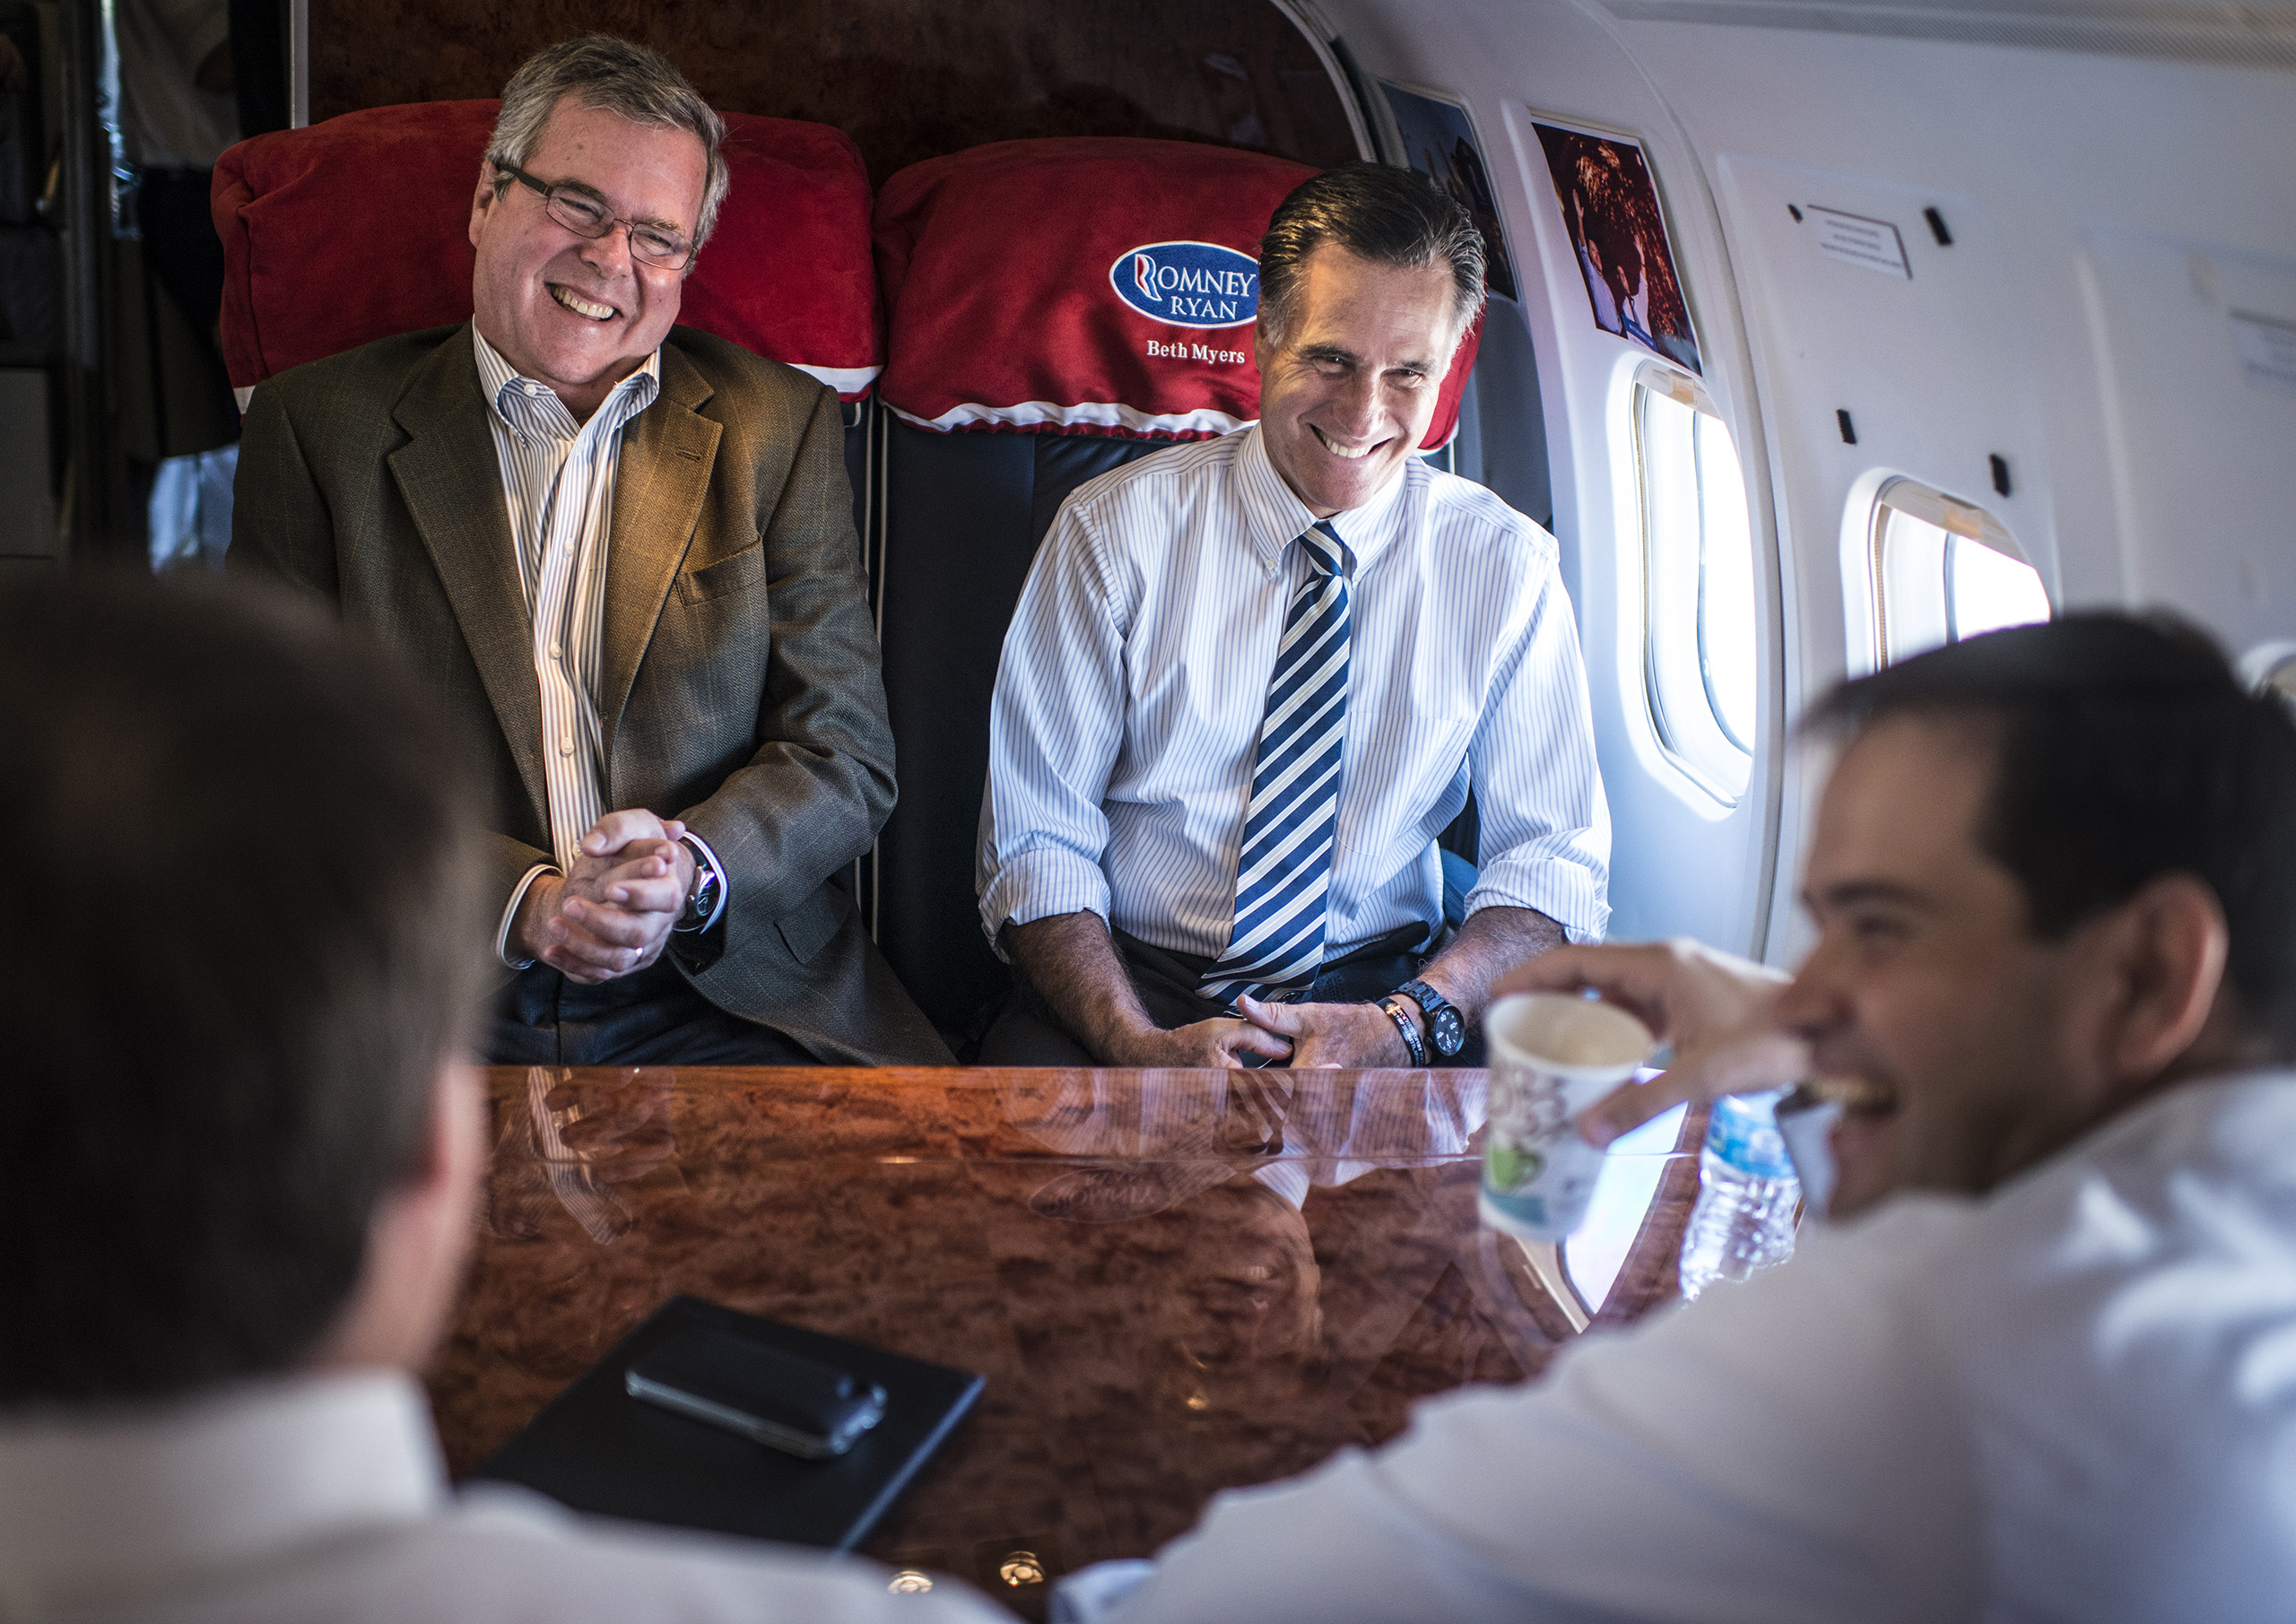 Republican nominee for President, Mitt Romney, campaigns around Florida with Governor Jeb Bush, left, Senator Marco Rubio, right, and Congressman Connie Mack, left back of head, in Coral Gables, Fla. on Oct., 31, 2012.